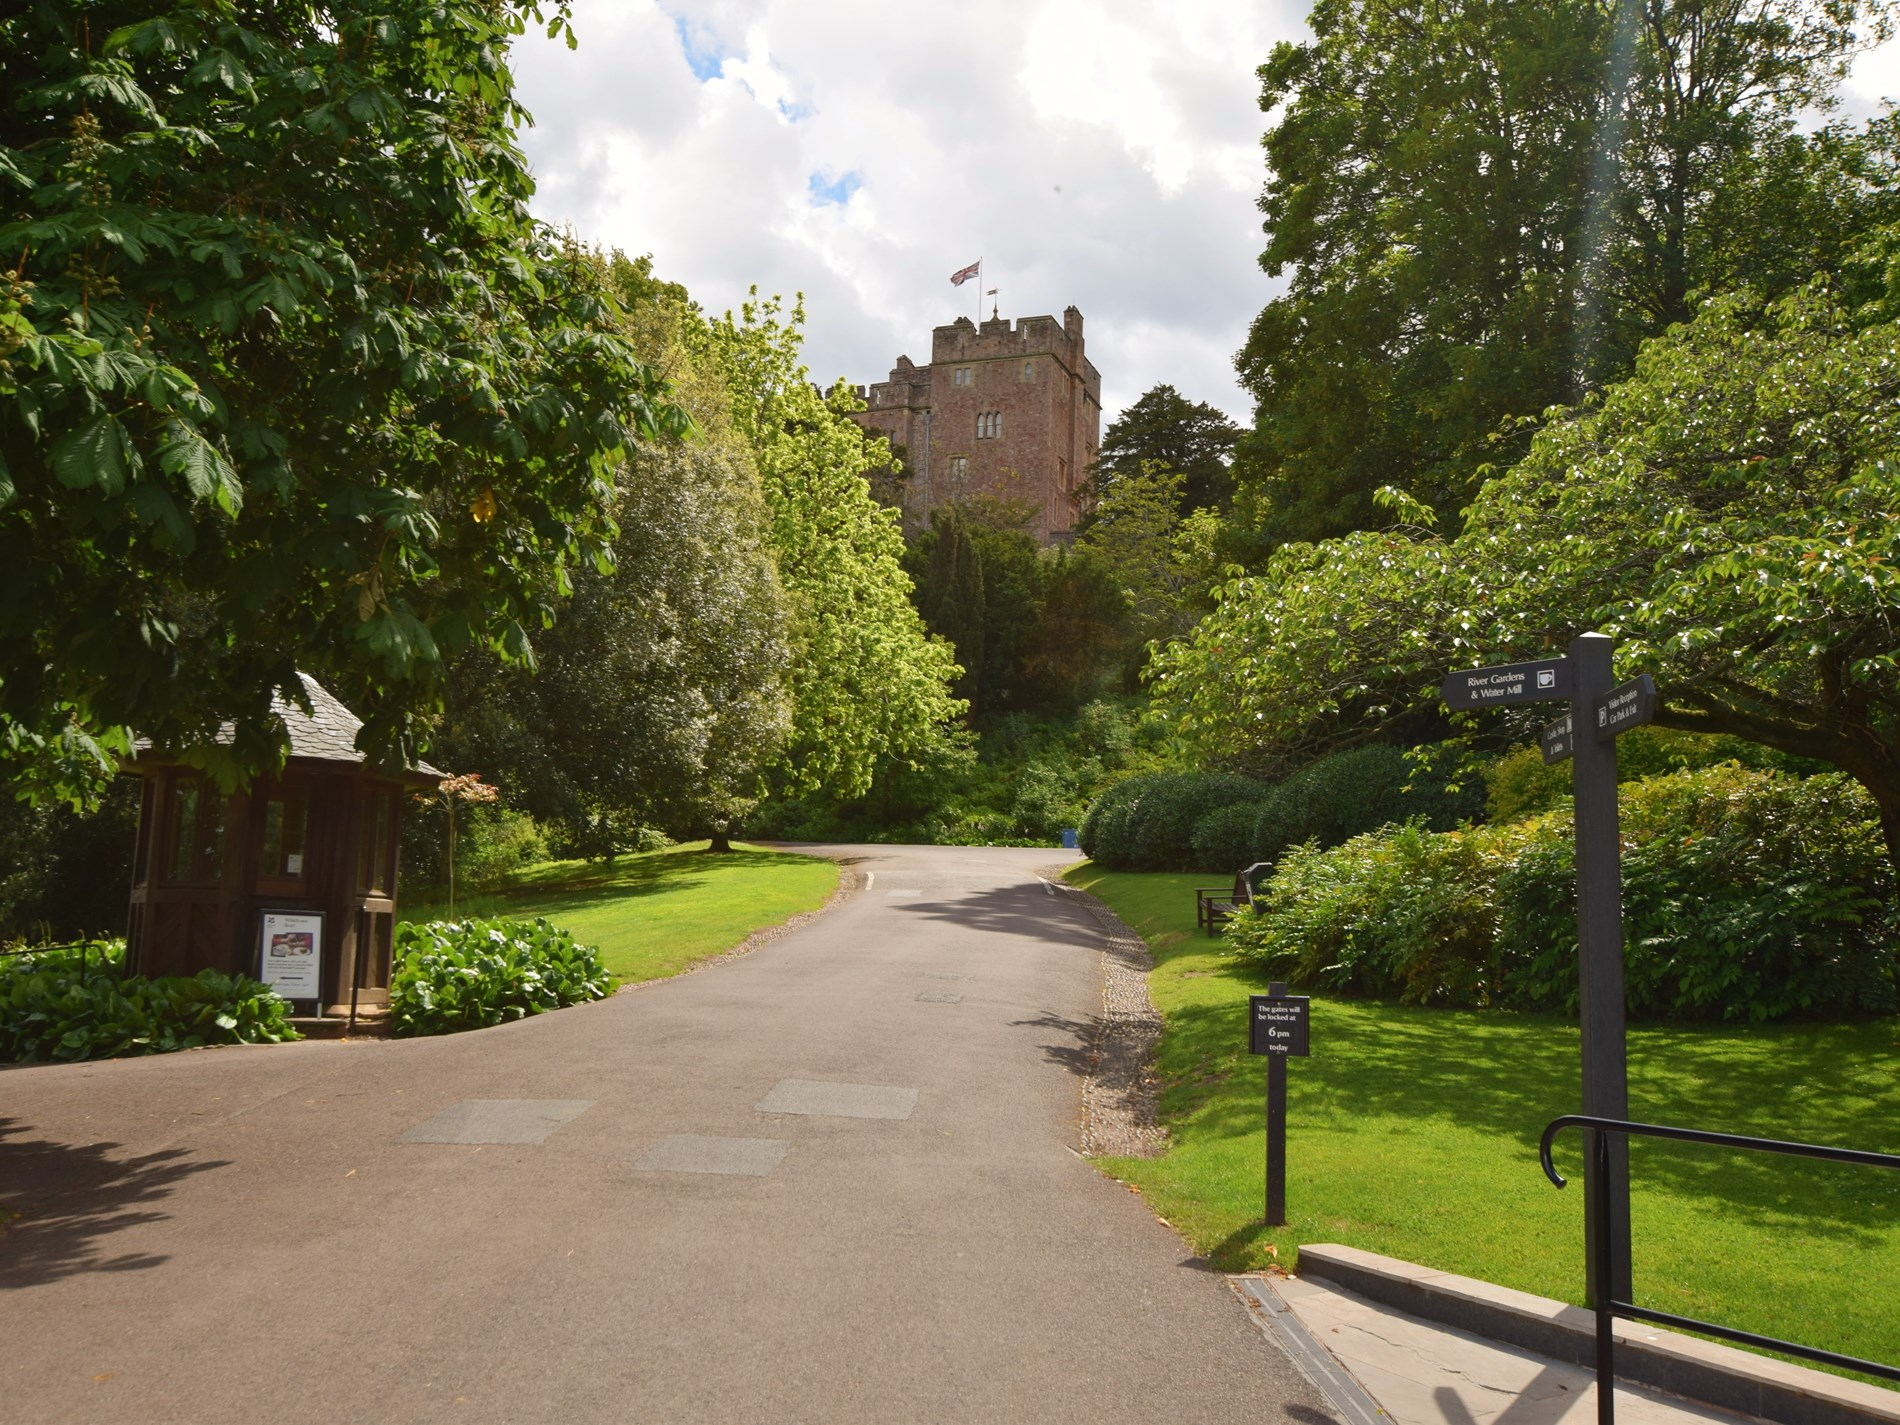 Visit nearby Dunster Castle